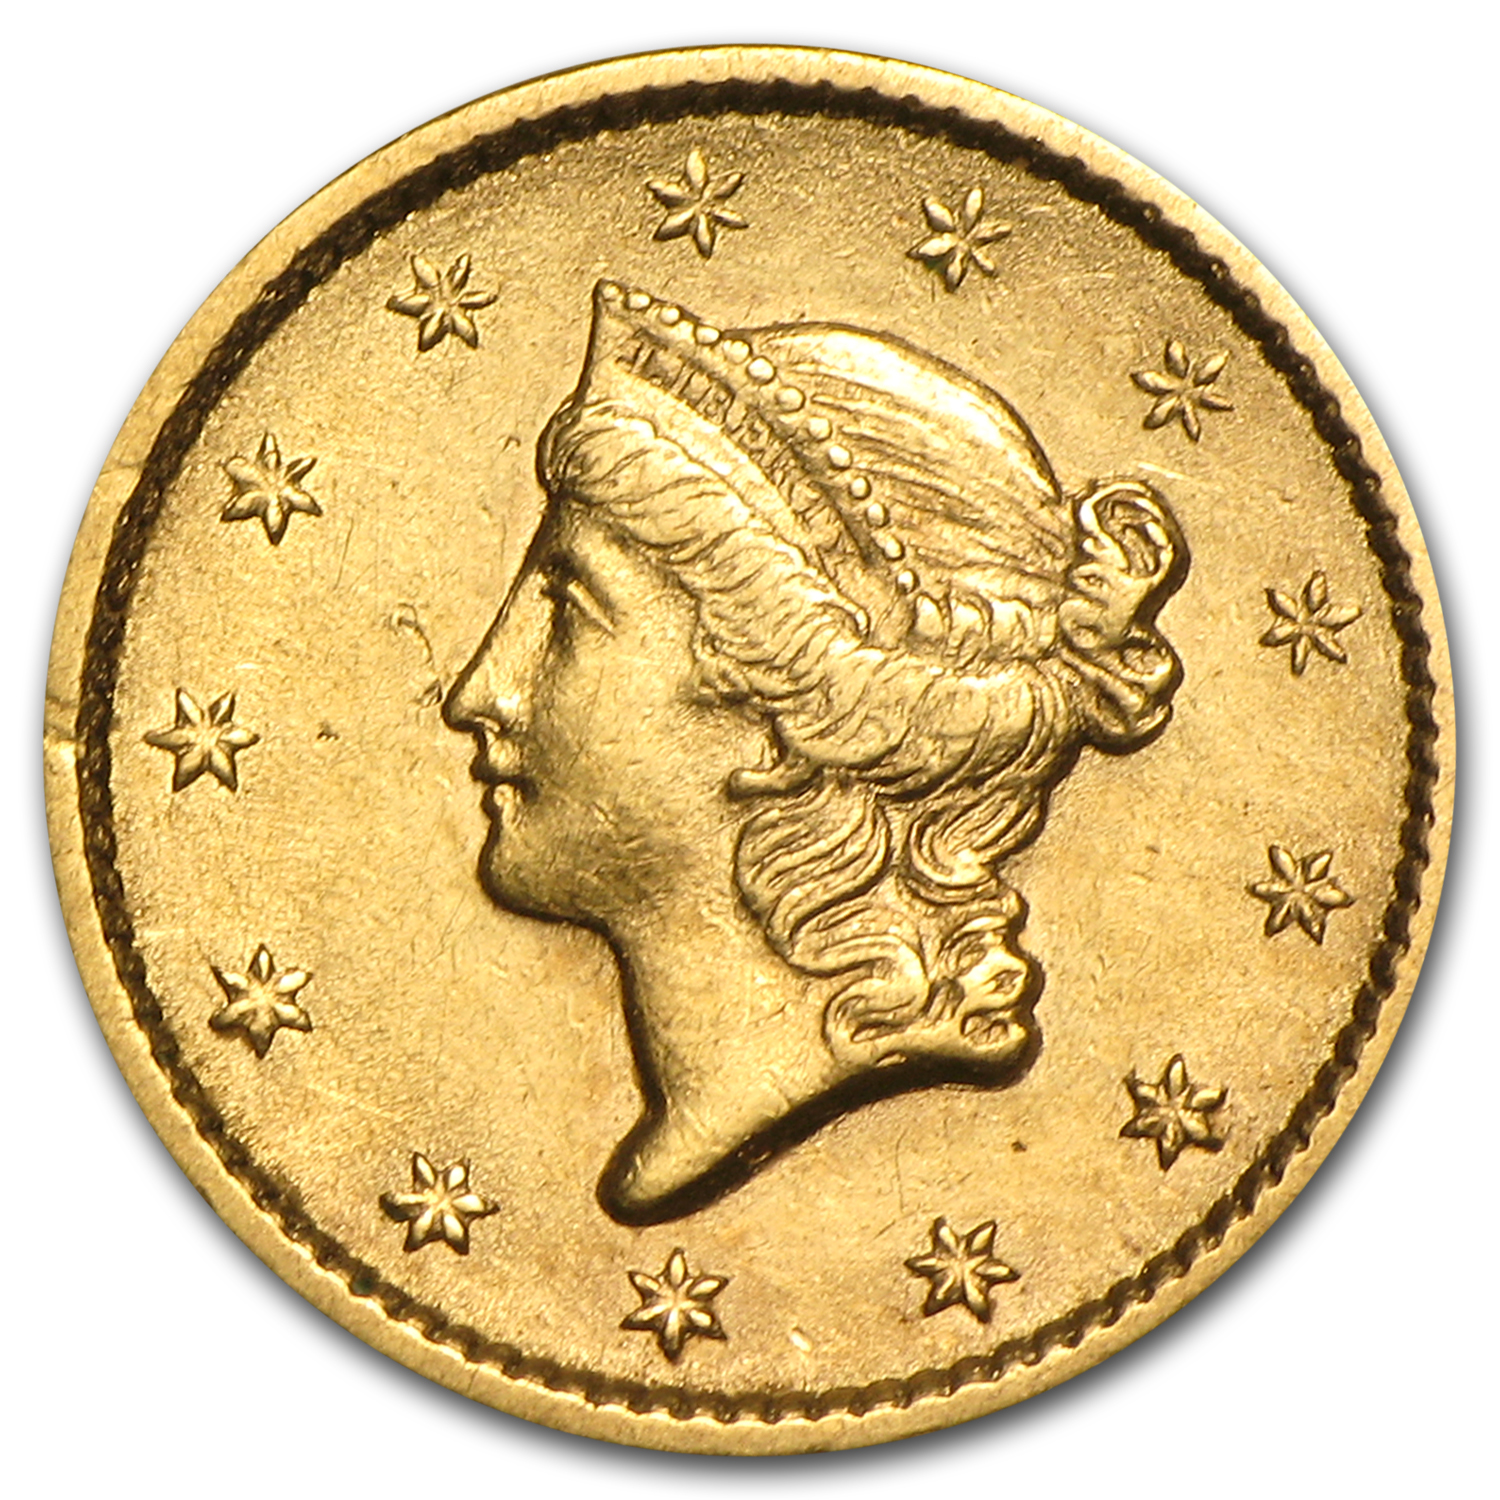 $1 Liberty Head Gold Type 1 XF (Random Year)